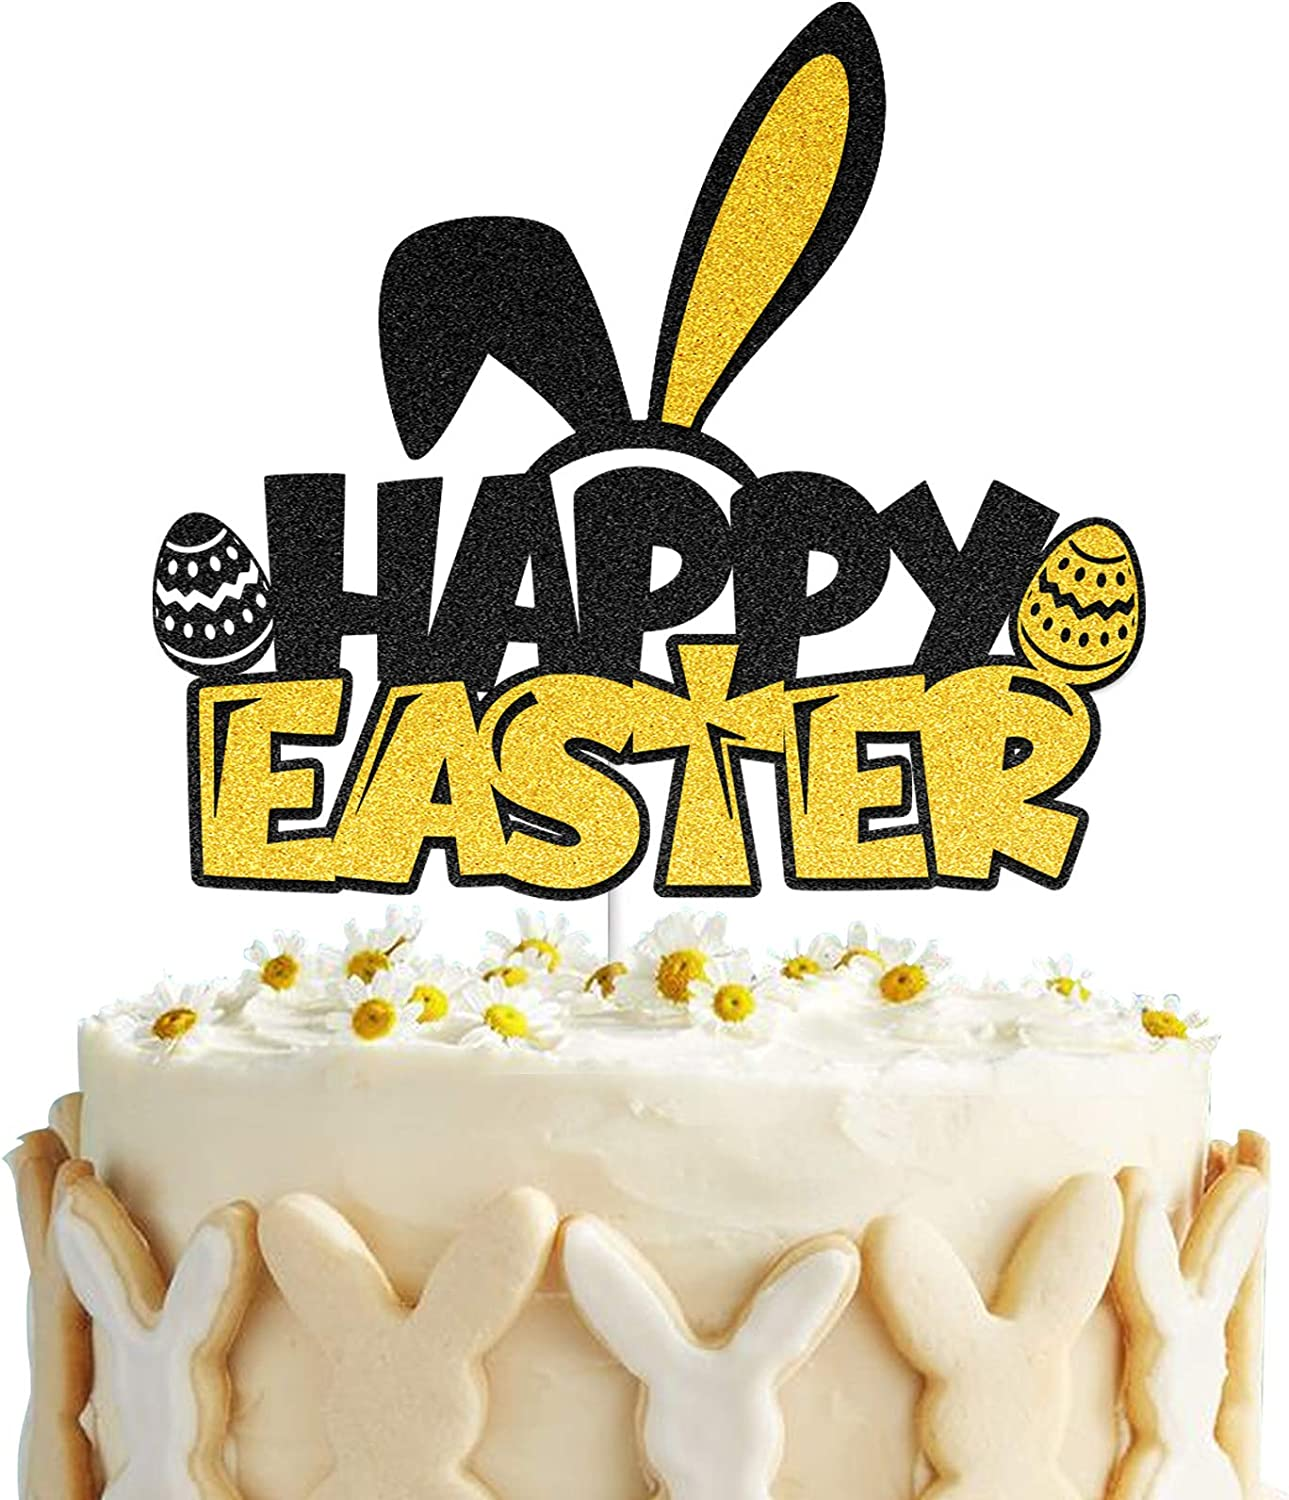 Happy Easter Cake Topper Bunny Rabbit Easter Egg Cake Decor for Spring Easter Party Decorations